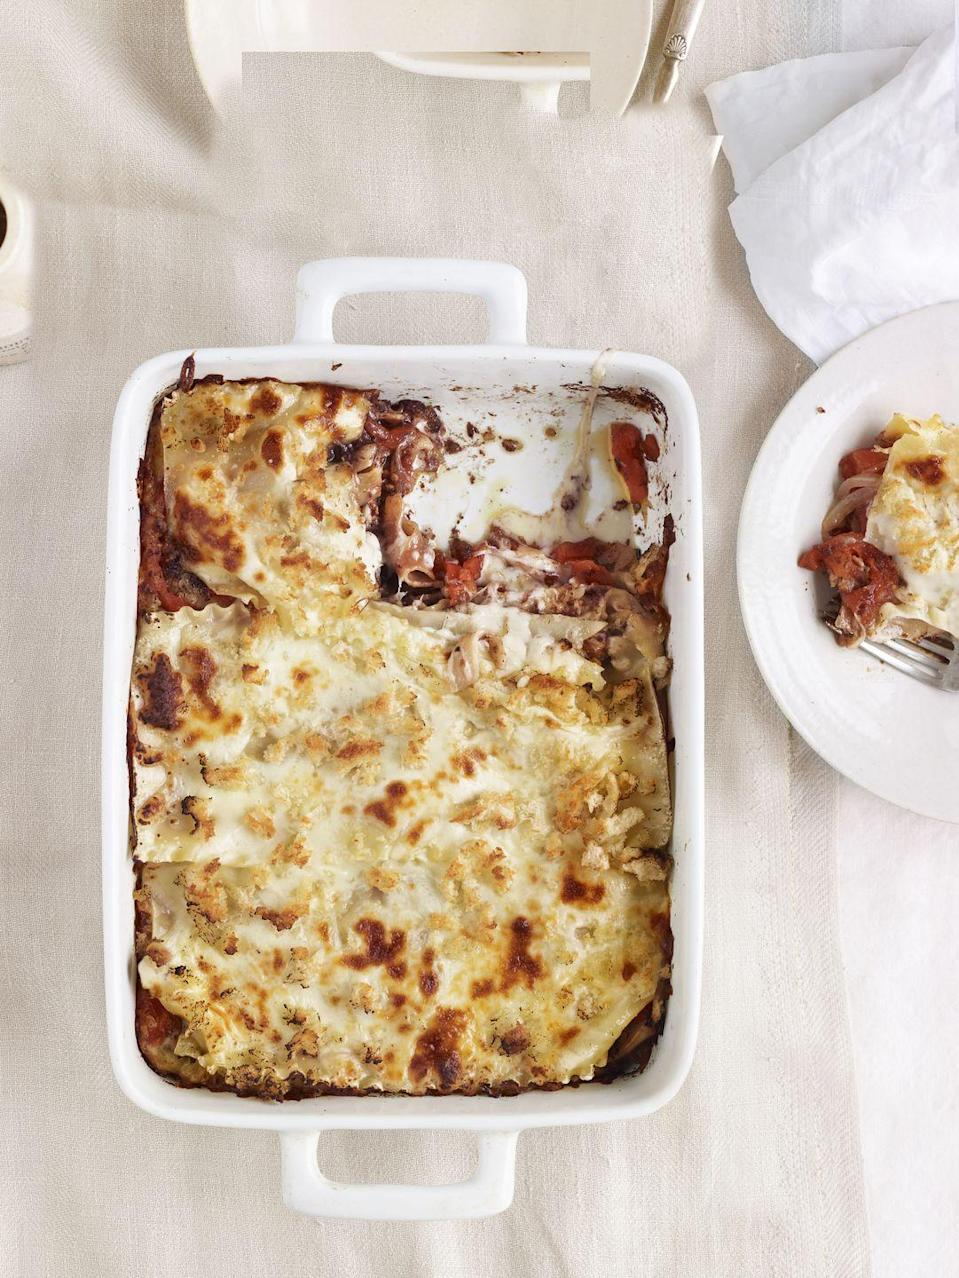 """<p>For a delectable twist, skip the sauce and instead tuck into thick-sliced tomatoes, plus caramelized onions, black-olive tapenade, and plenty of mozzarella</p><p><strong><a href=""""https://www.countryliving.com/food-drinks/recipes/a4179/fresh-tomato-lasagna-olive-tapenade-recipe-clv0512/"""" rel=""""nofollow noopener"""" target=""""_blank"""" data-ylk=""""slk:Get the recipe."""" class=""""link rapid-noclick-resp"""">Get the recipe.</a> </strong></p>"""